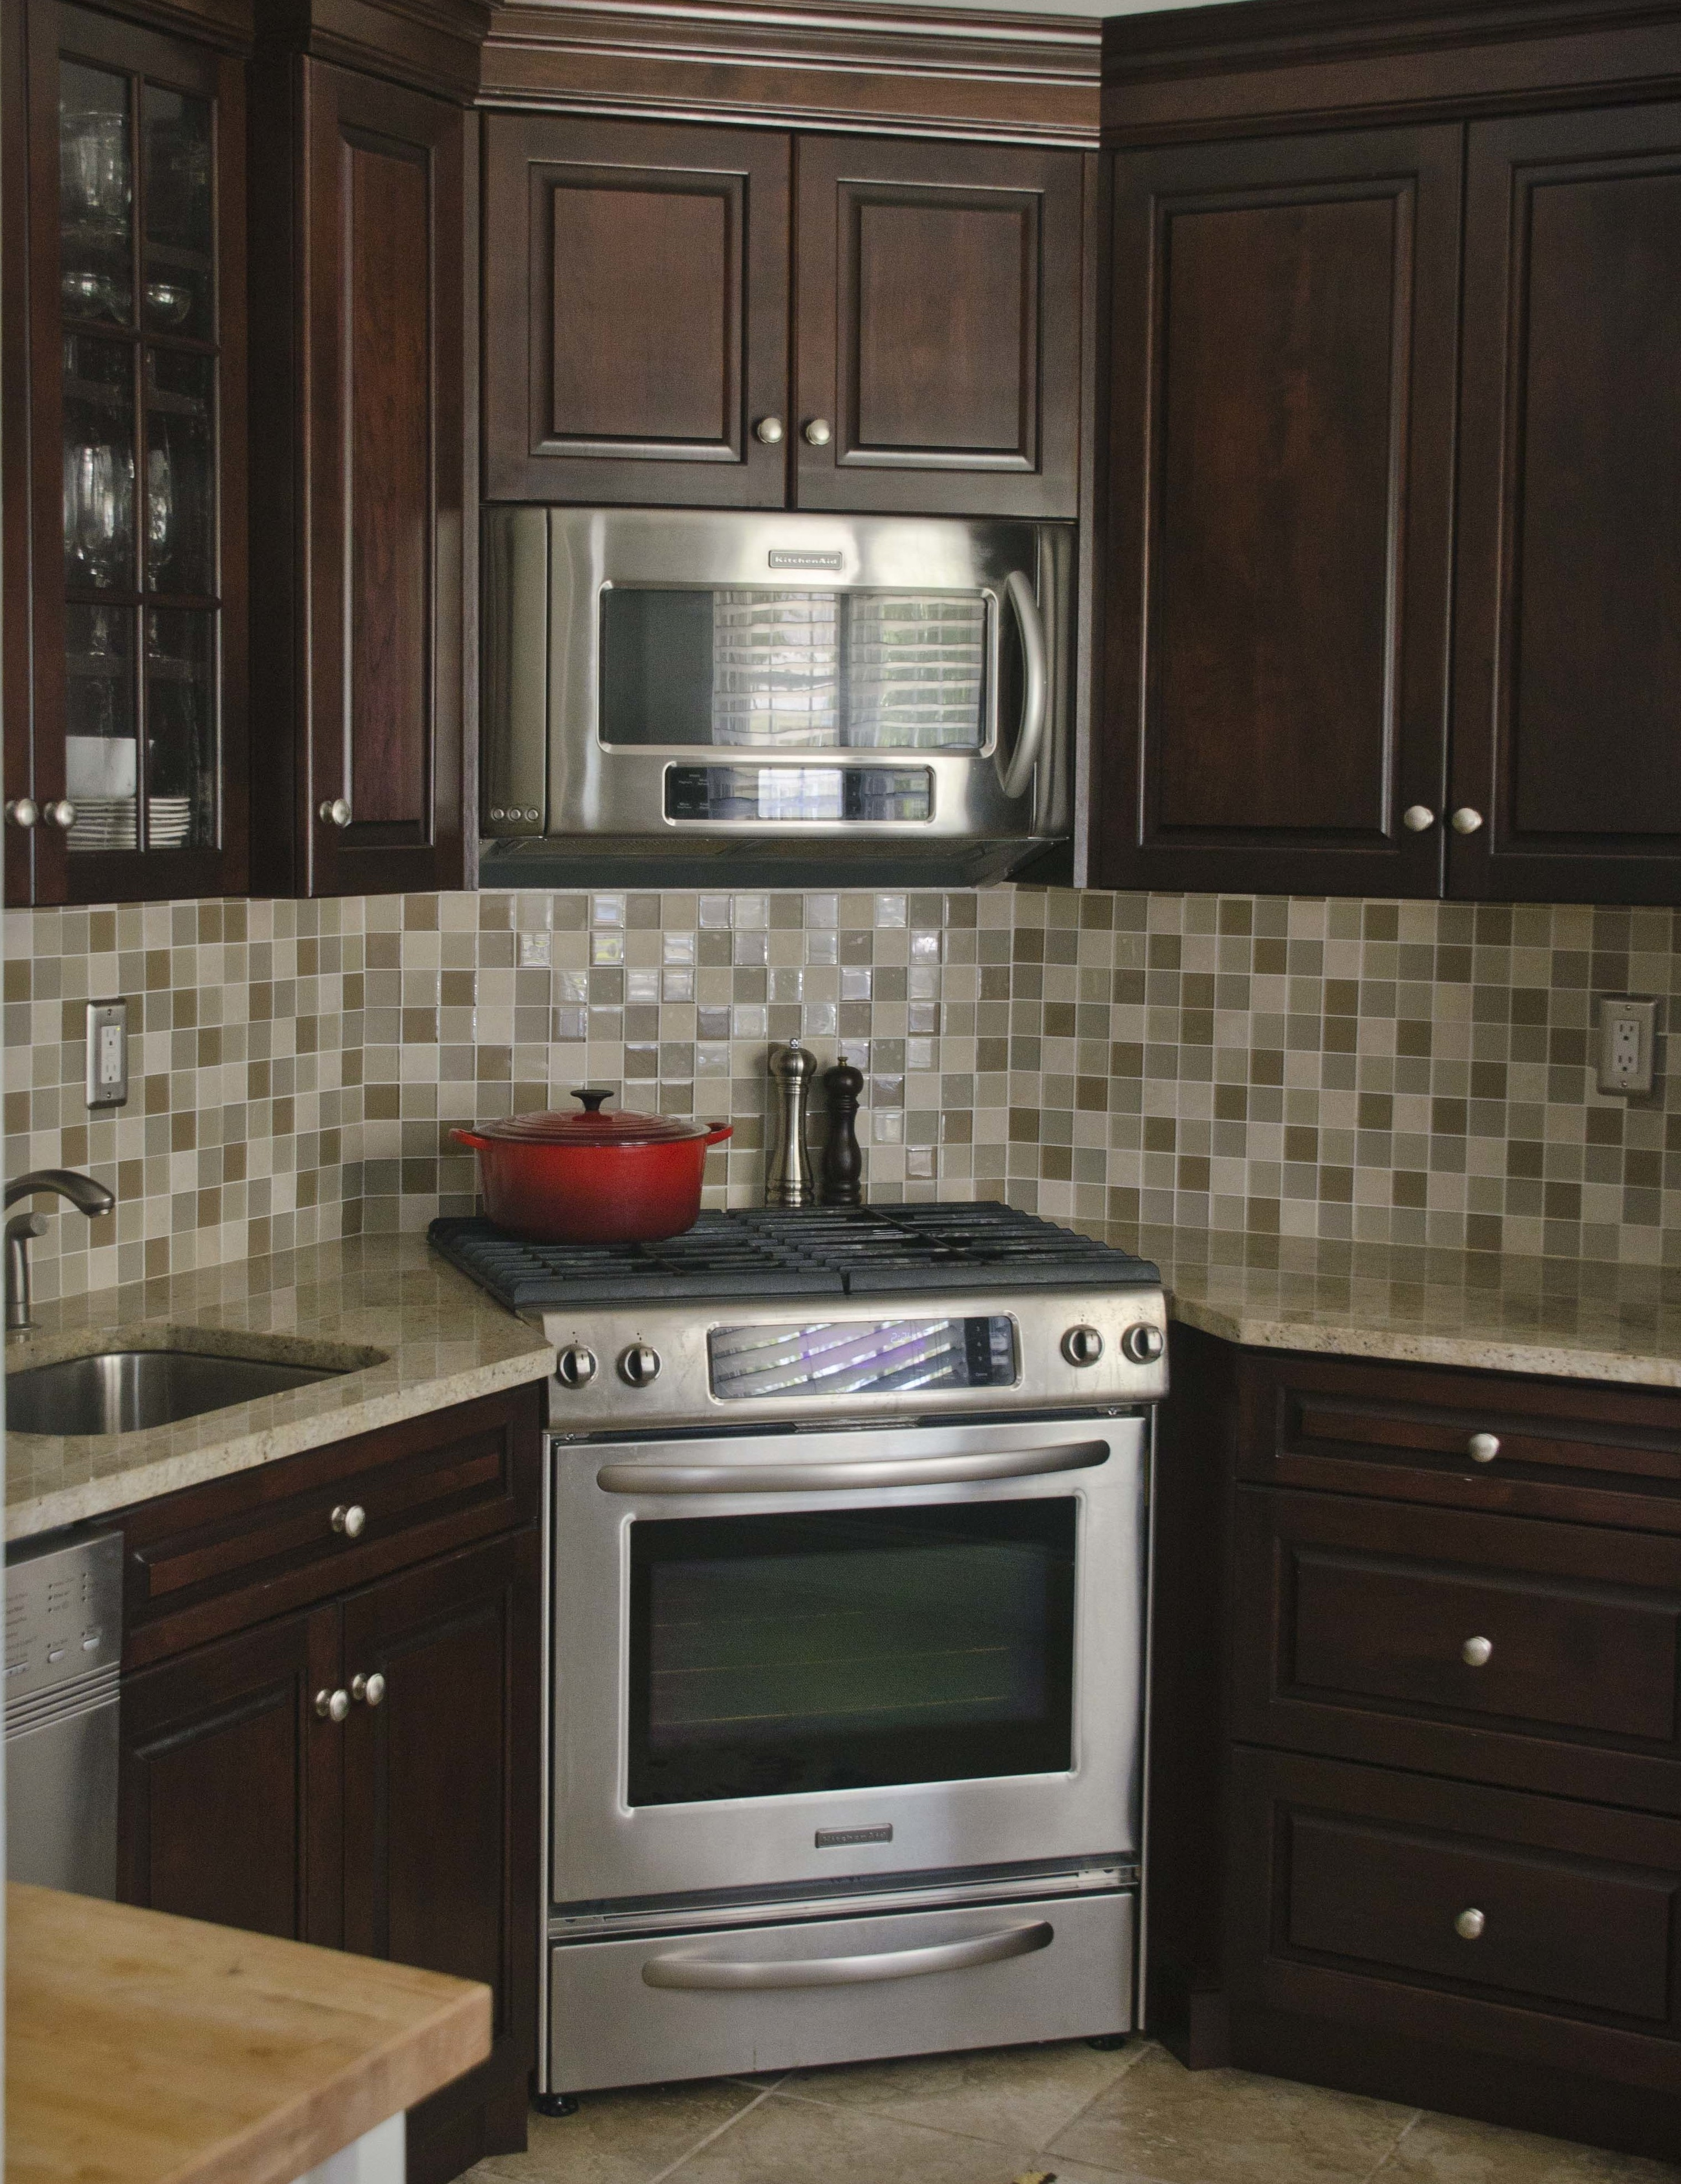 Kitchen Cabinet Spacing For Stove